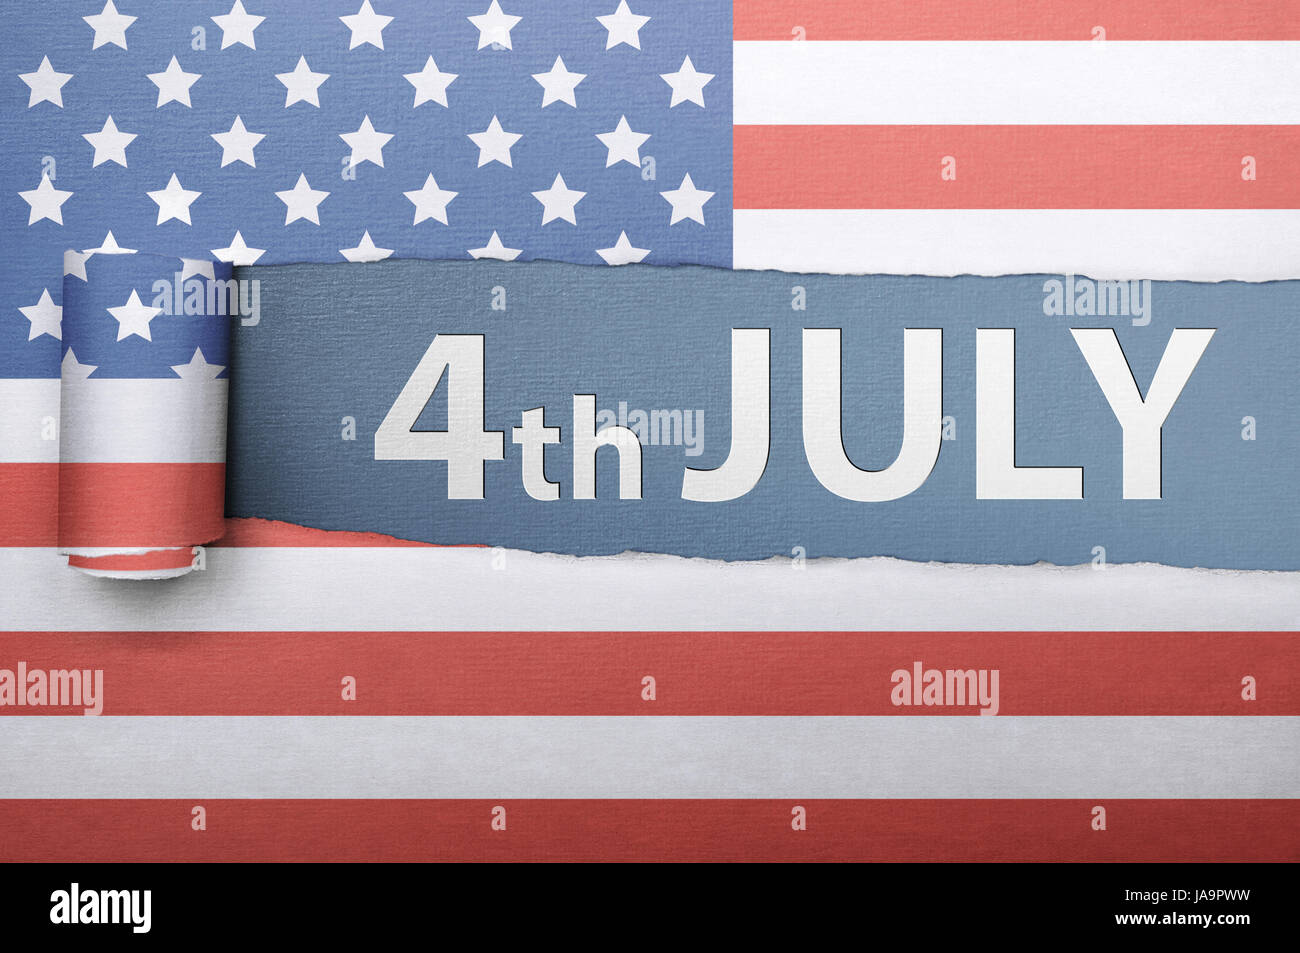 Ripped american flag paper with fourth 4th of july greetings over ripped american flag paper with fourth 4th of july greetings over blue background m4hsunfo